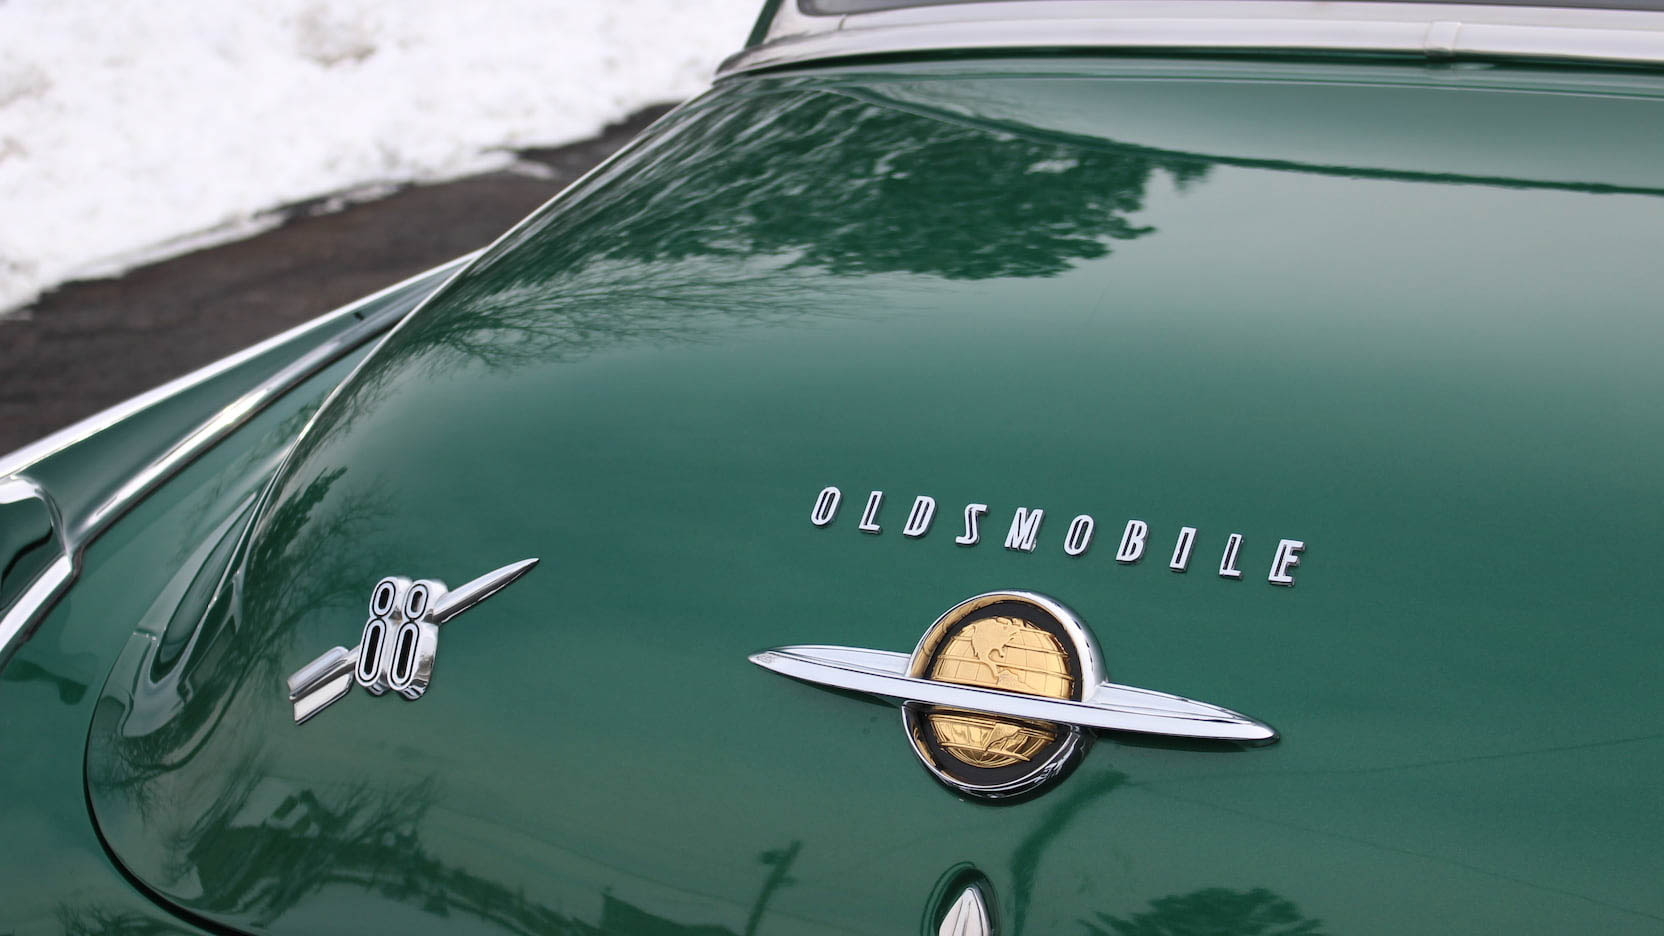 1950 Oldsmobile 88 badge